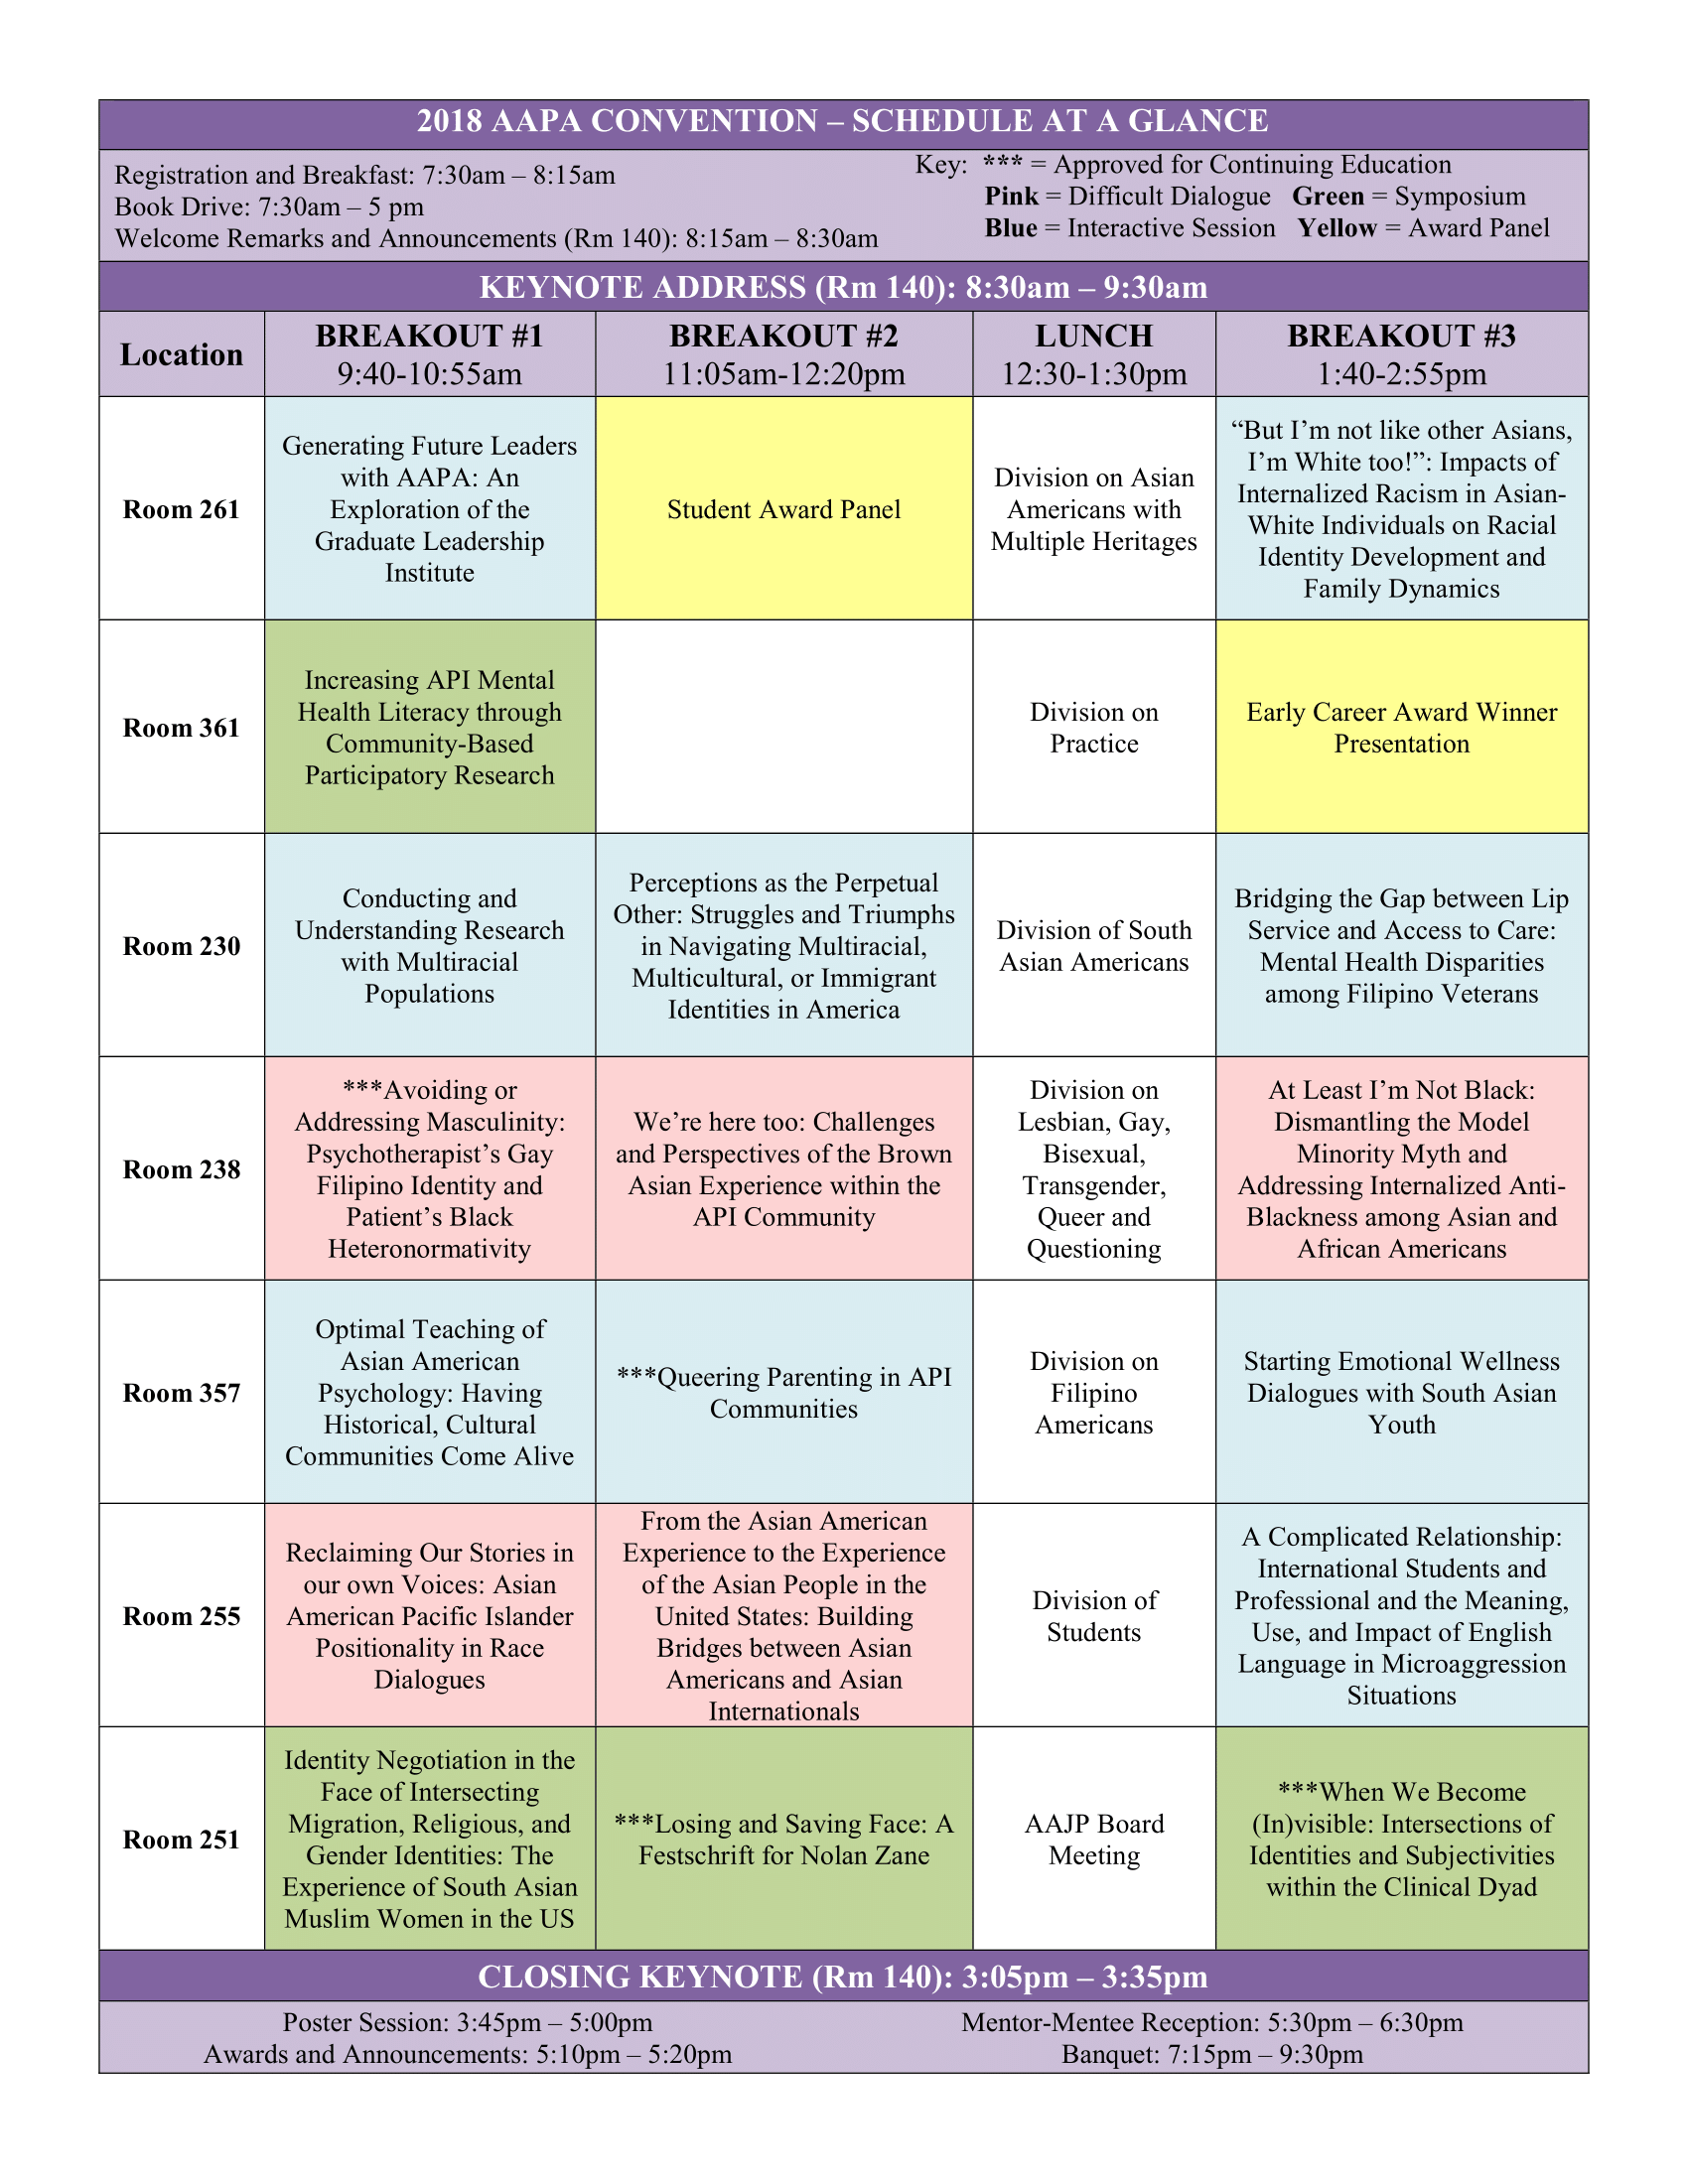 2018 AAPA Convention Schedule at a Glance 8.2.18 1